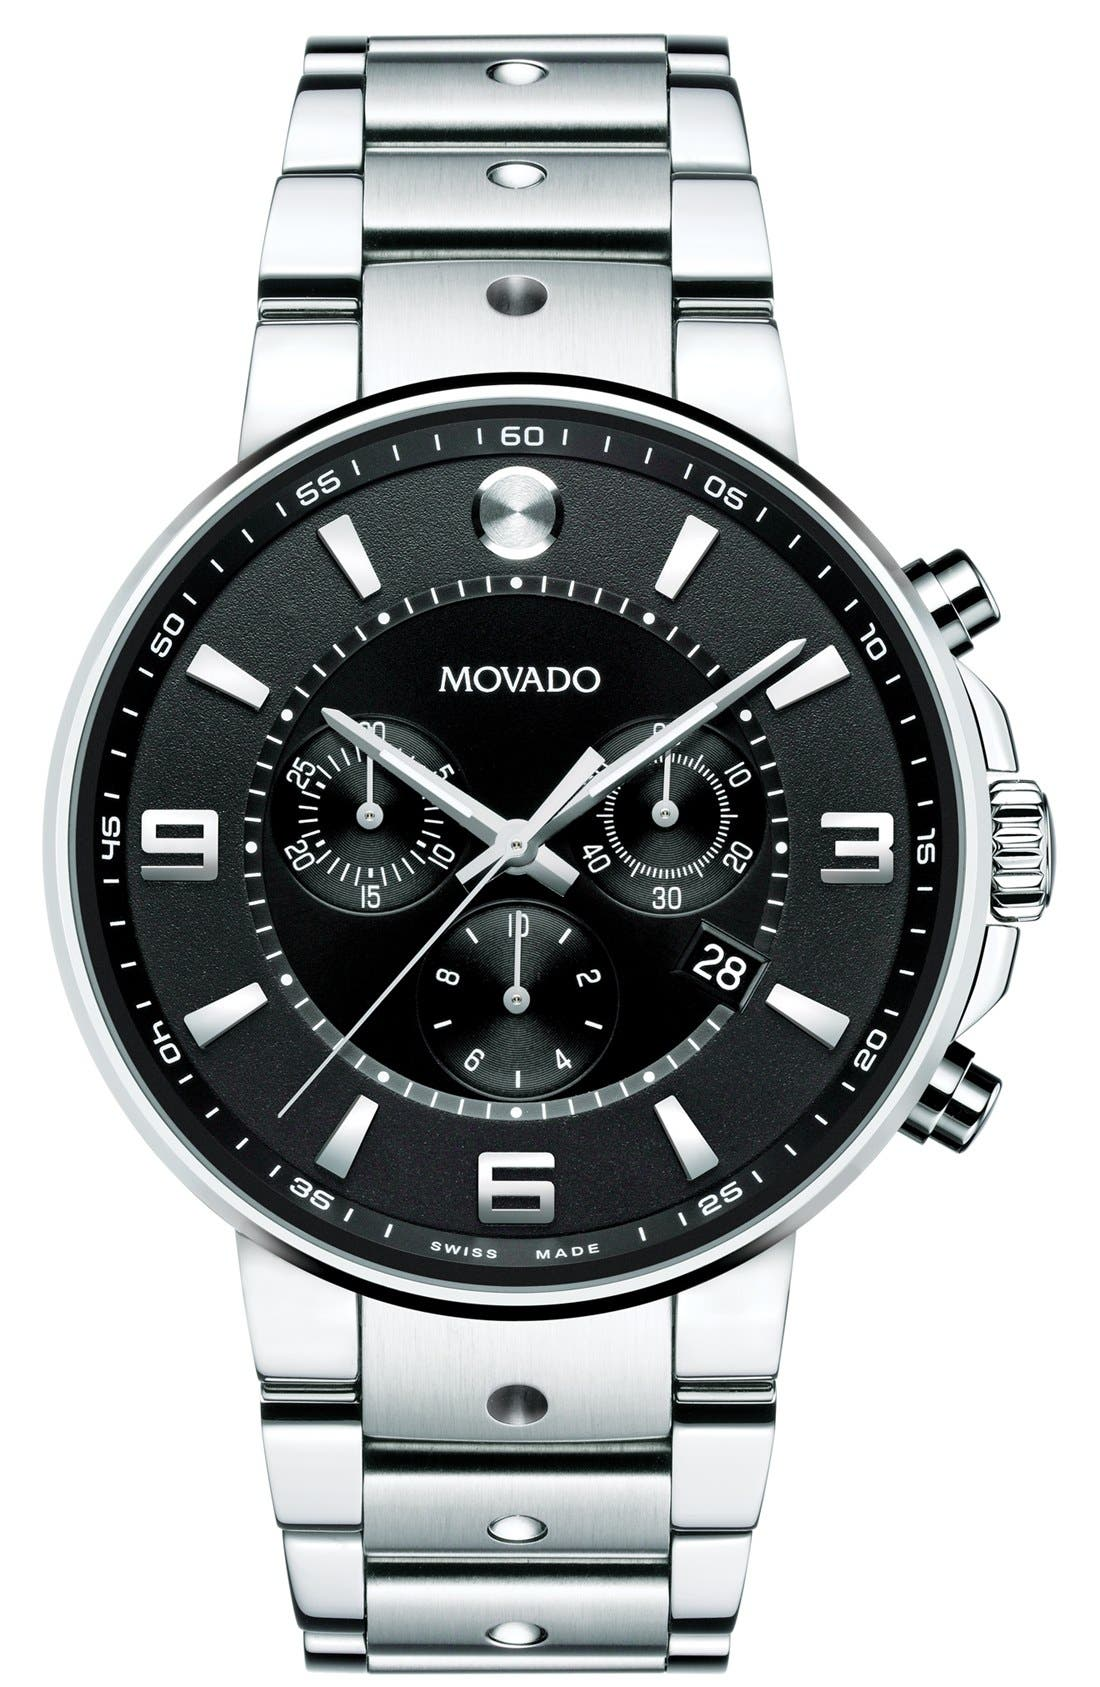 Alternate Image 1 Selected - Movado 'S.E. Pilot' Chronograph Bracelet Watch, 42mm